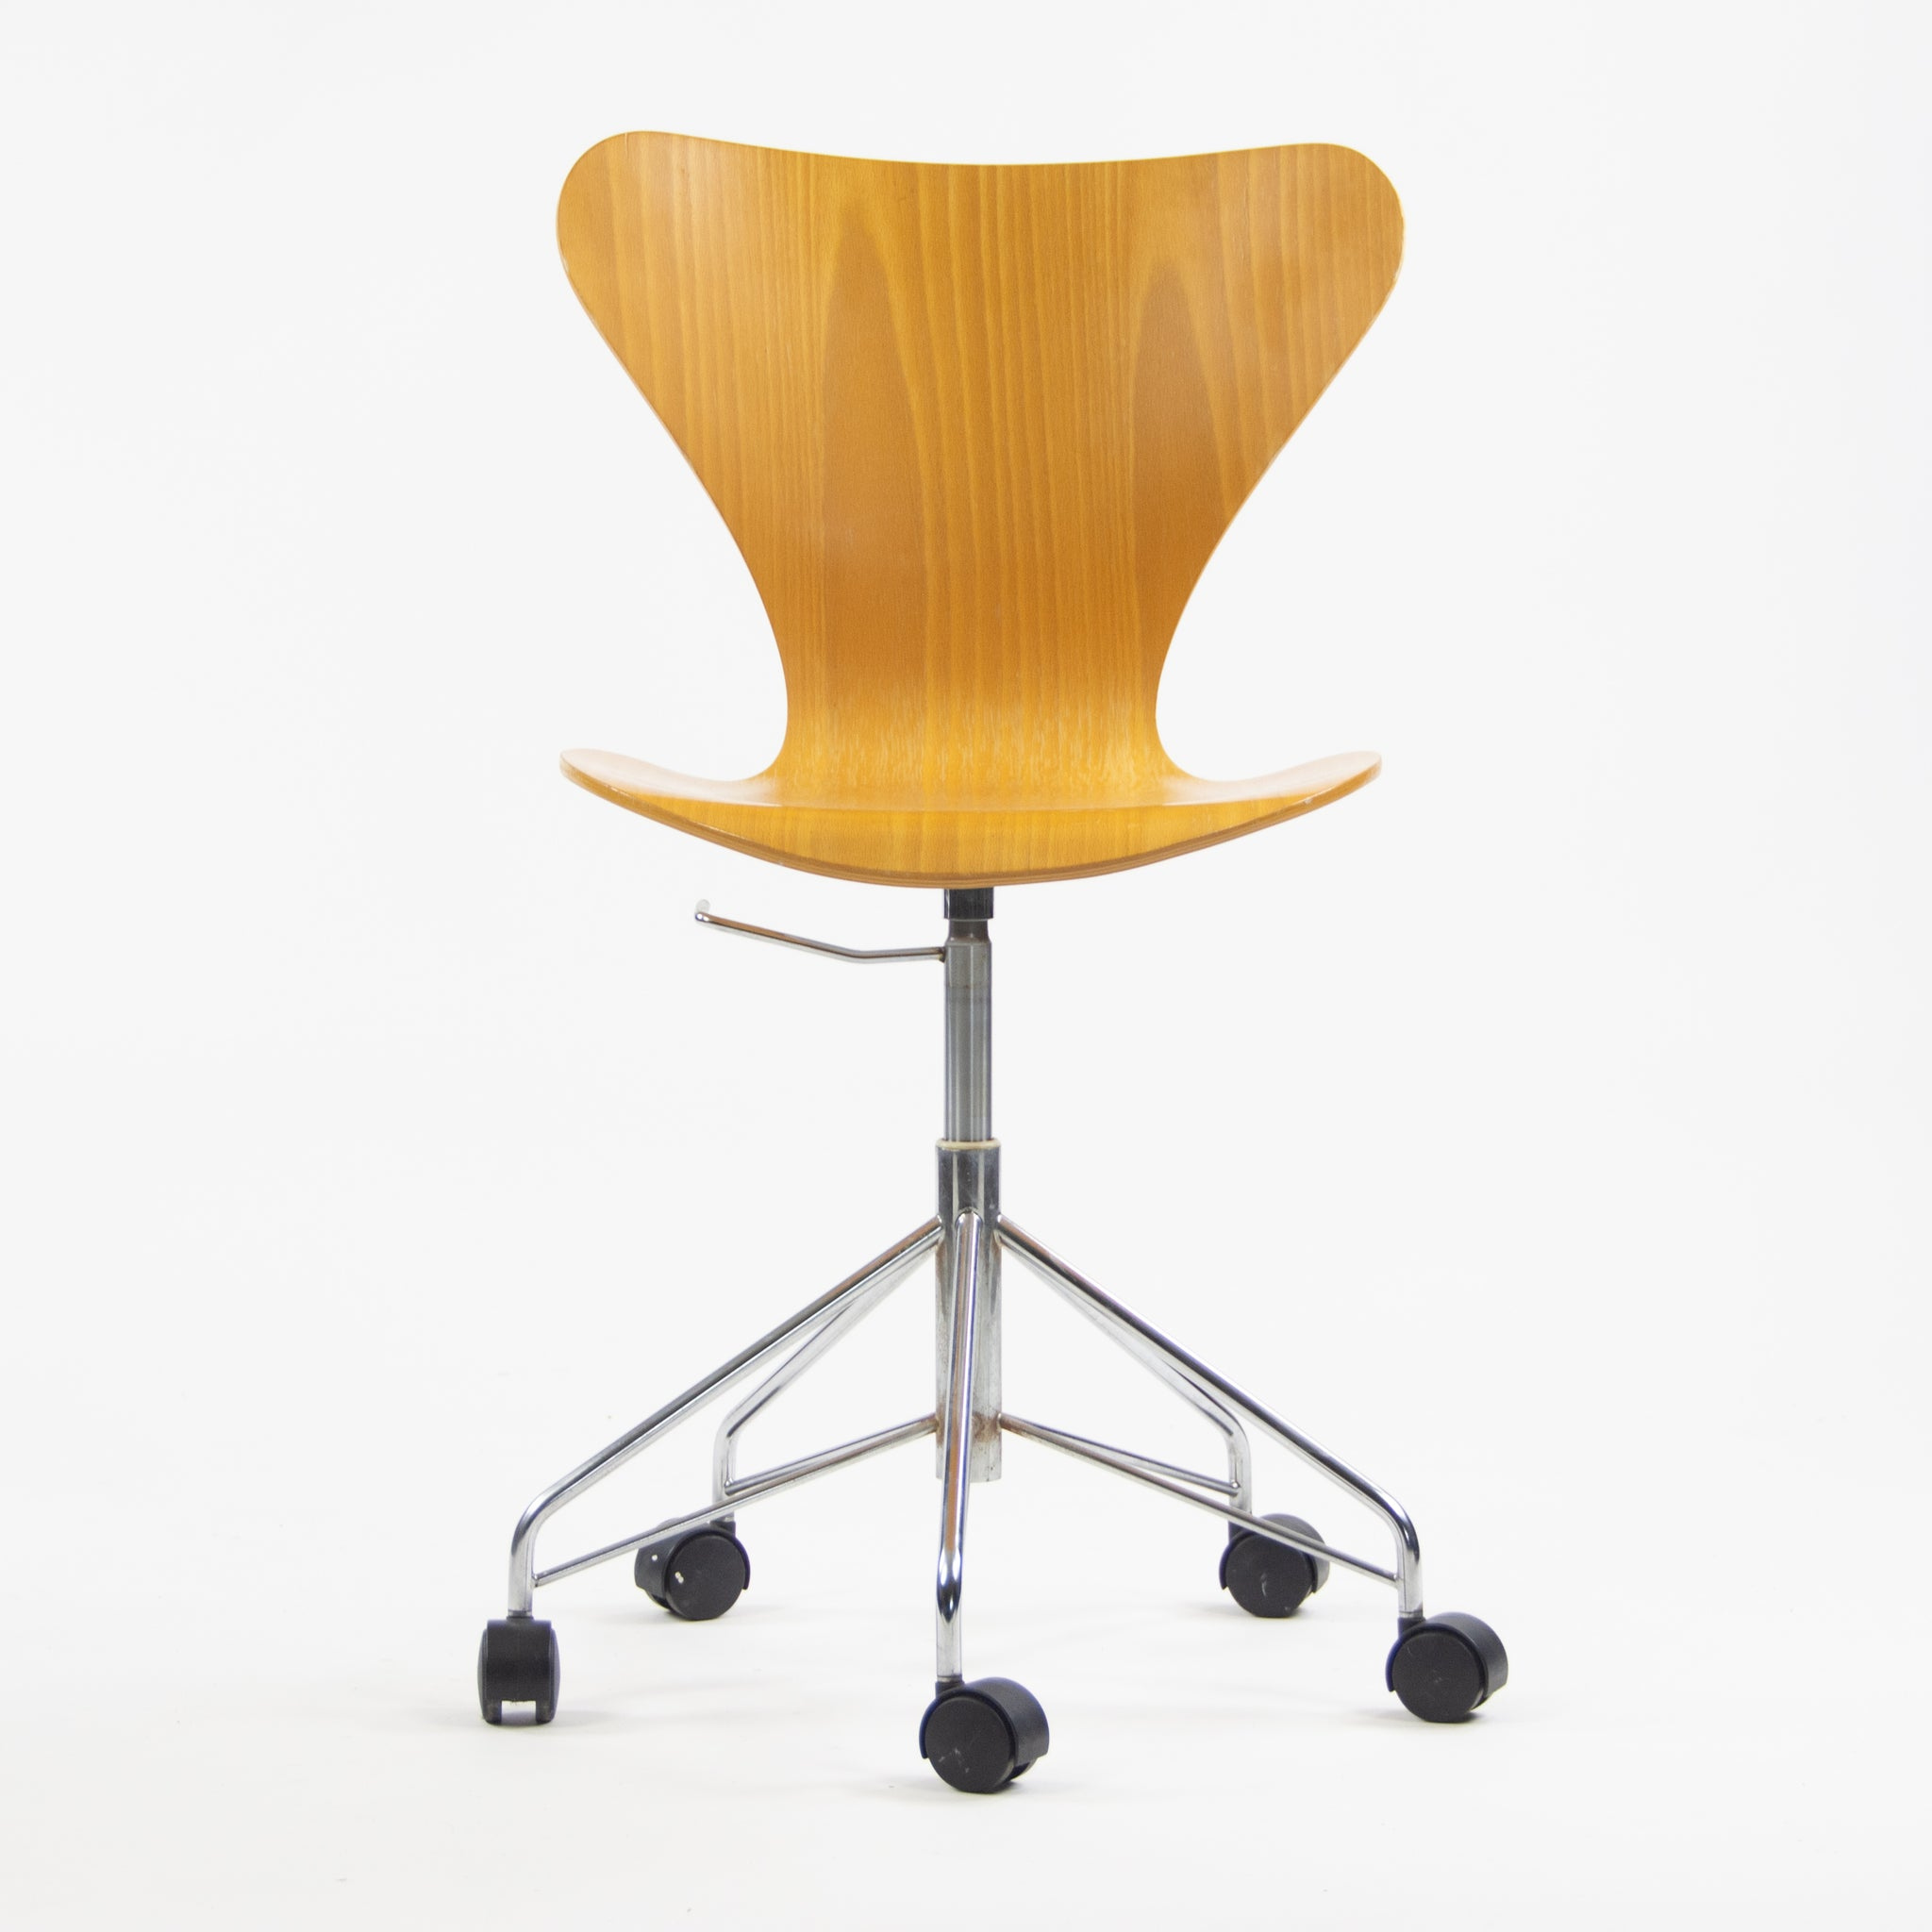 Arne Jacobsen Vintage 3117 Rolling Desk Chair by Fritz Hansen Denmark 3x Available